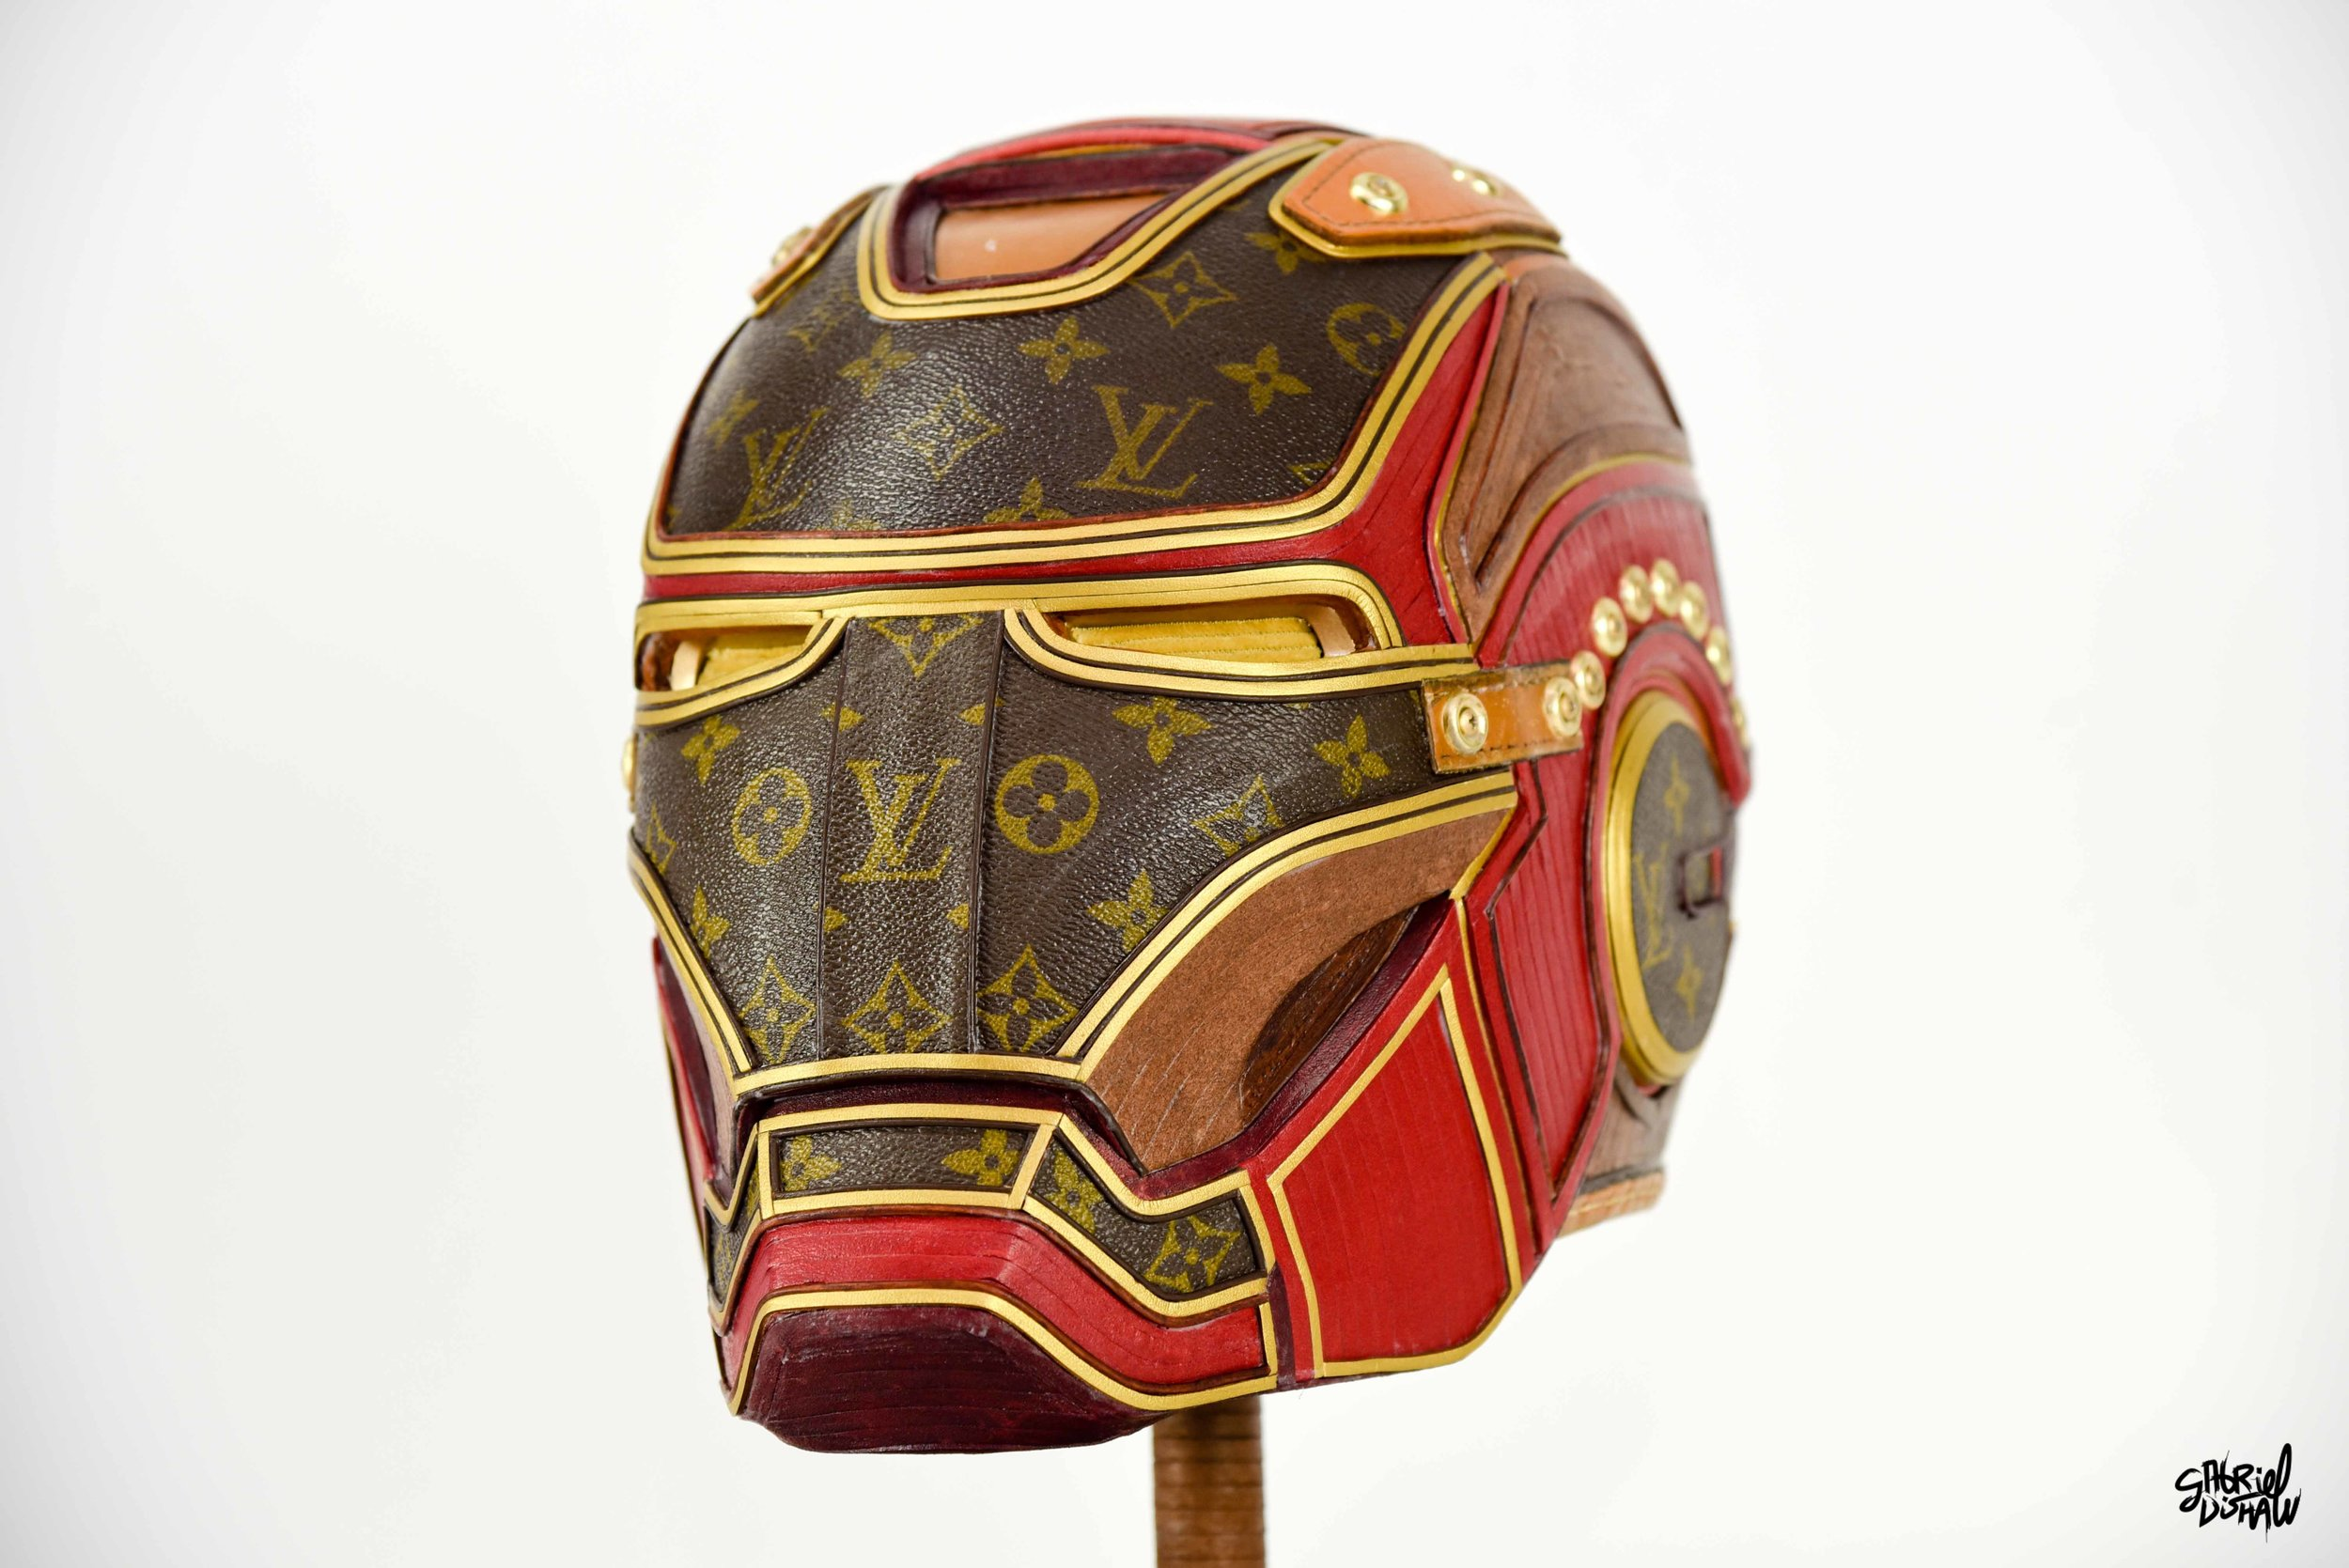 Gabriel Dishaw Iron Man LV Two-4365.jpg